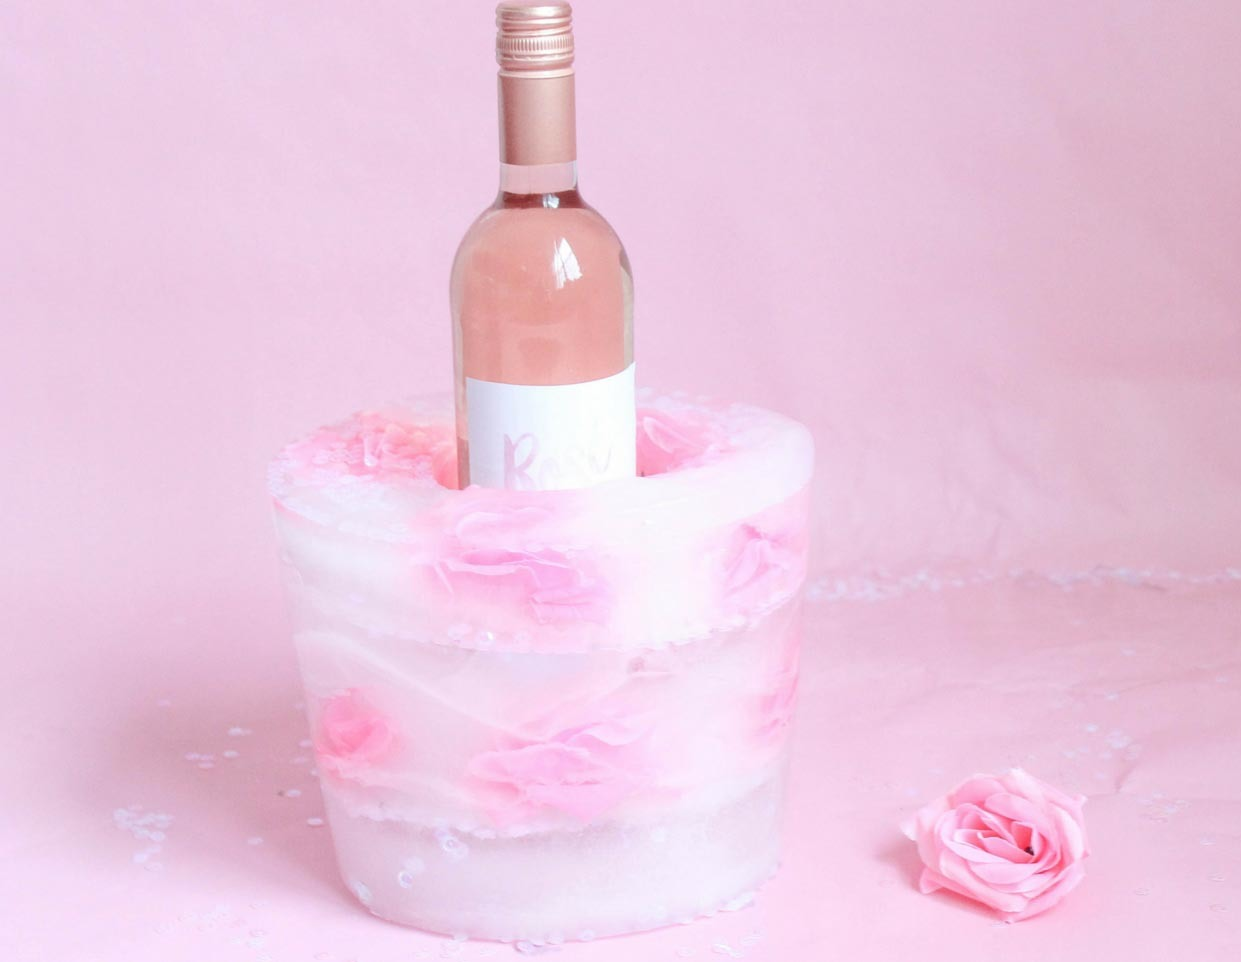 How To Make A Rose Floral Ice Bucket Fun365